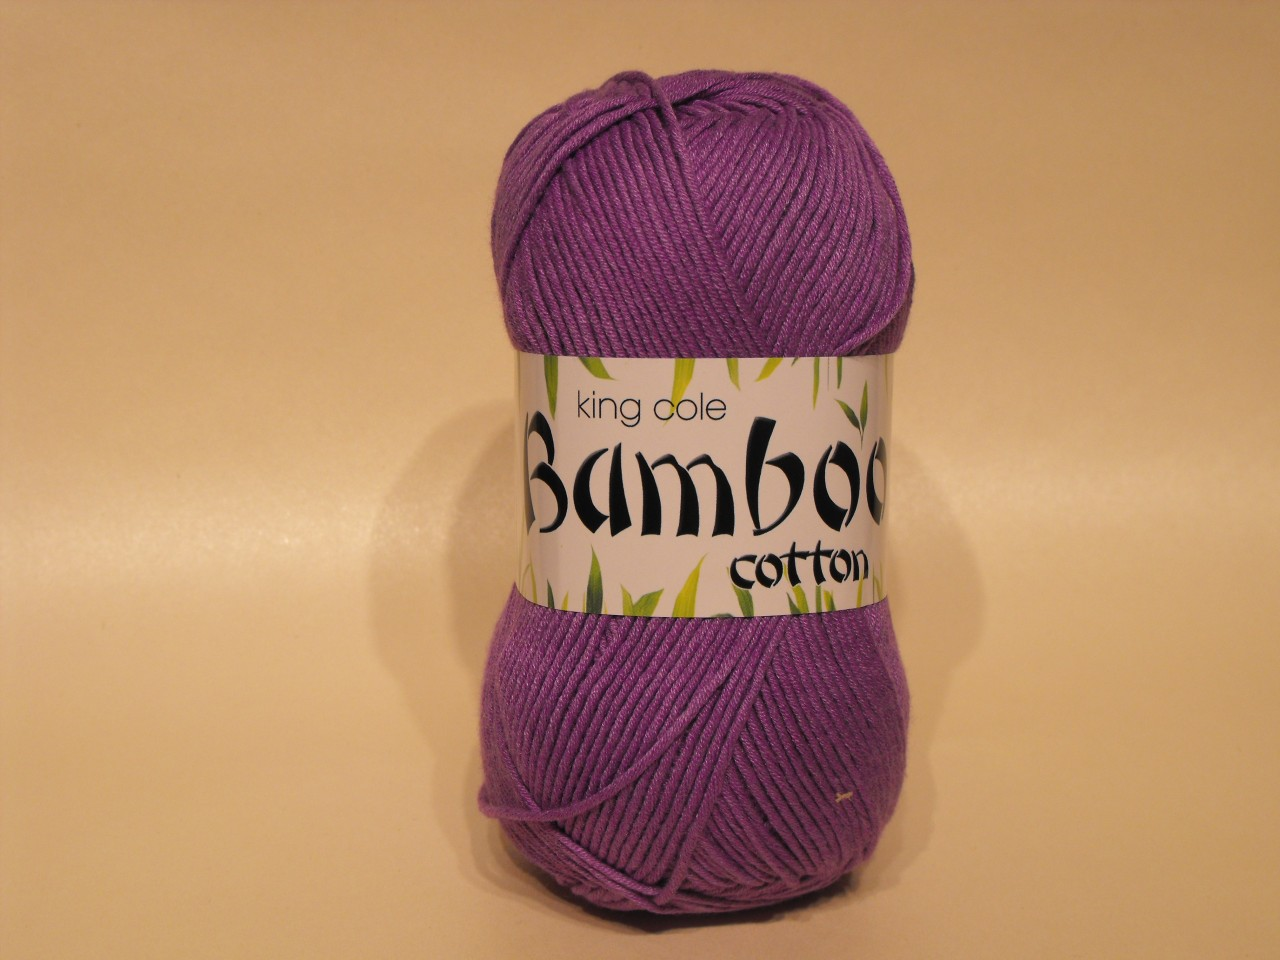 King Cole Bamboo Cotton Double Knit yarn in Violet